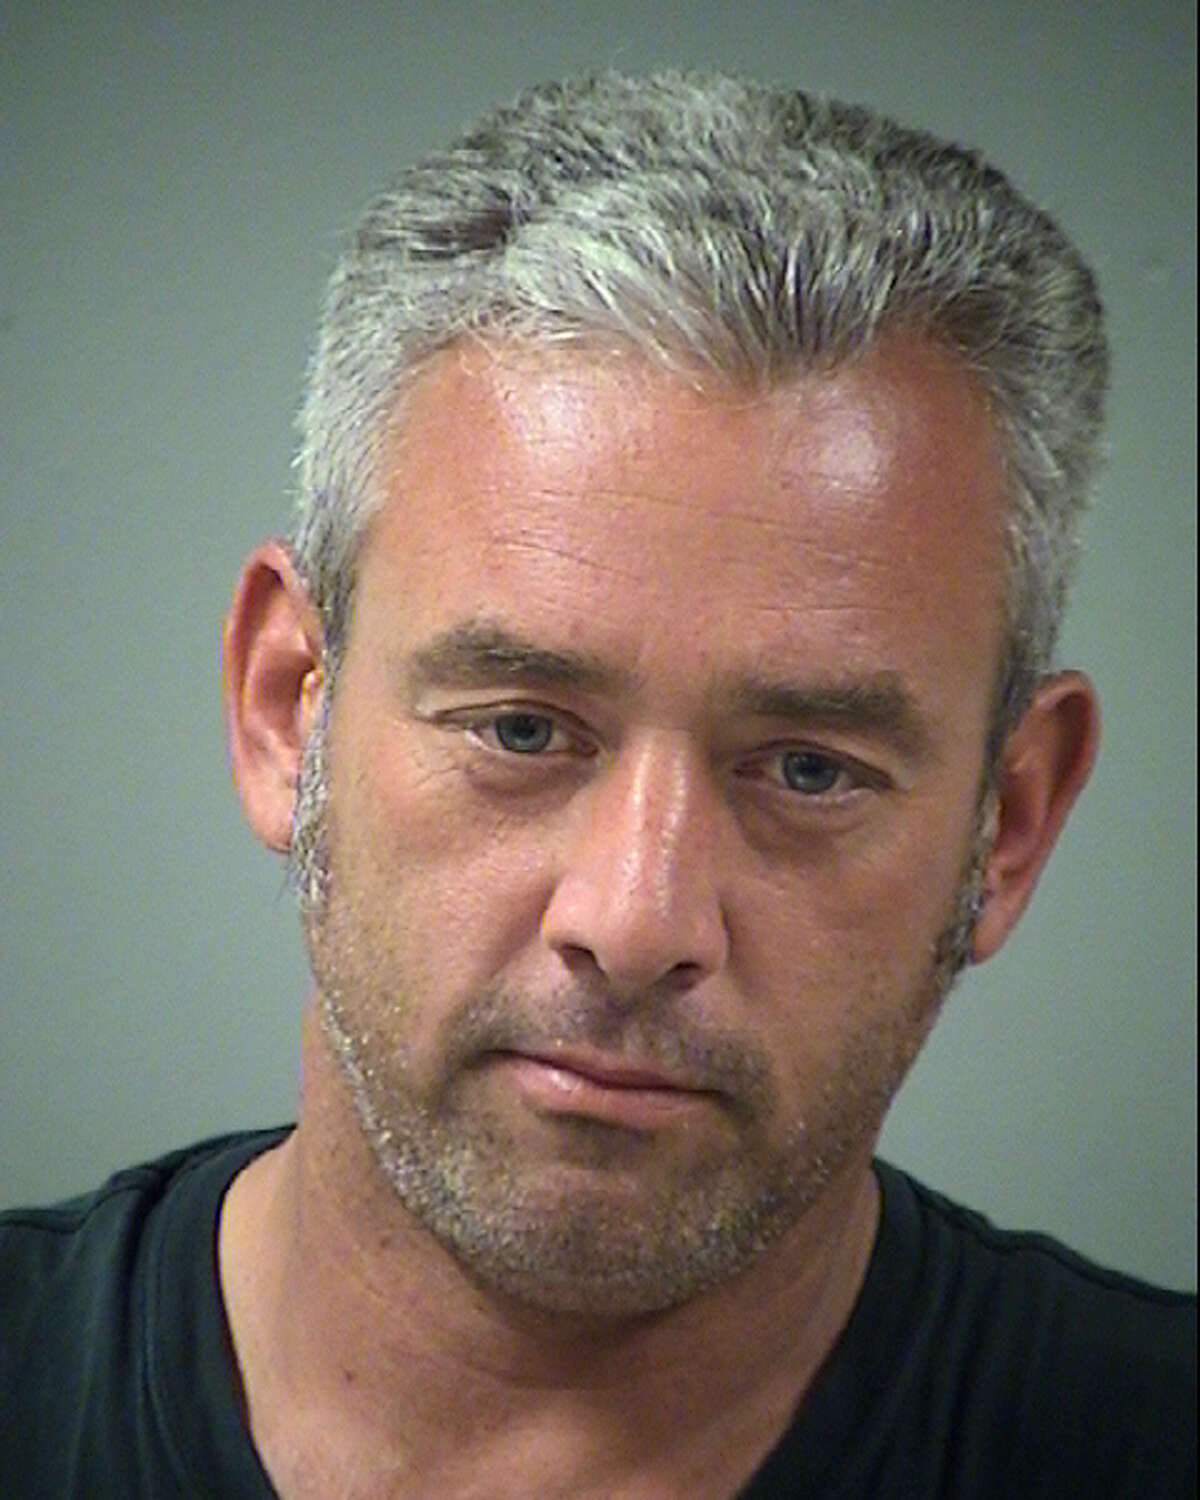 Antone Shannon, 38, is accused of stealing a shark from the San Antonio Aquarium on July 28, 2018, according to police.